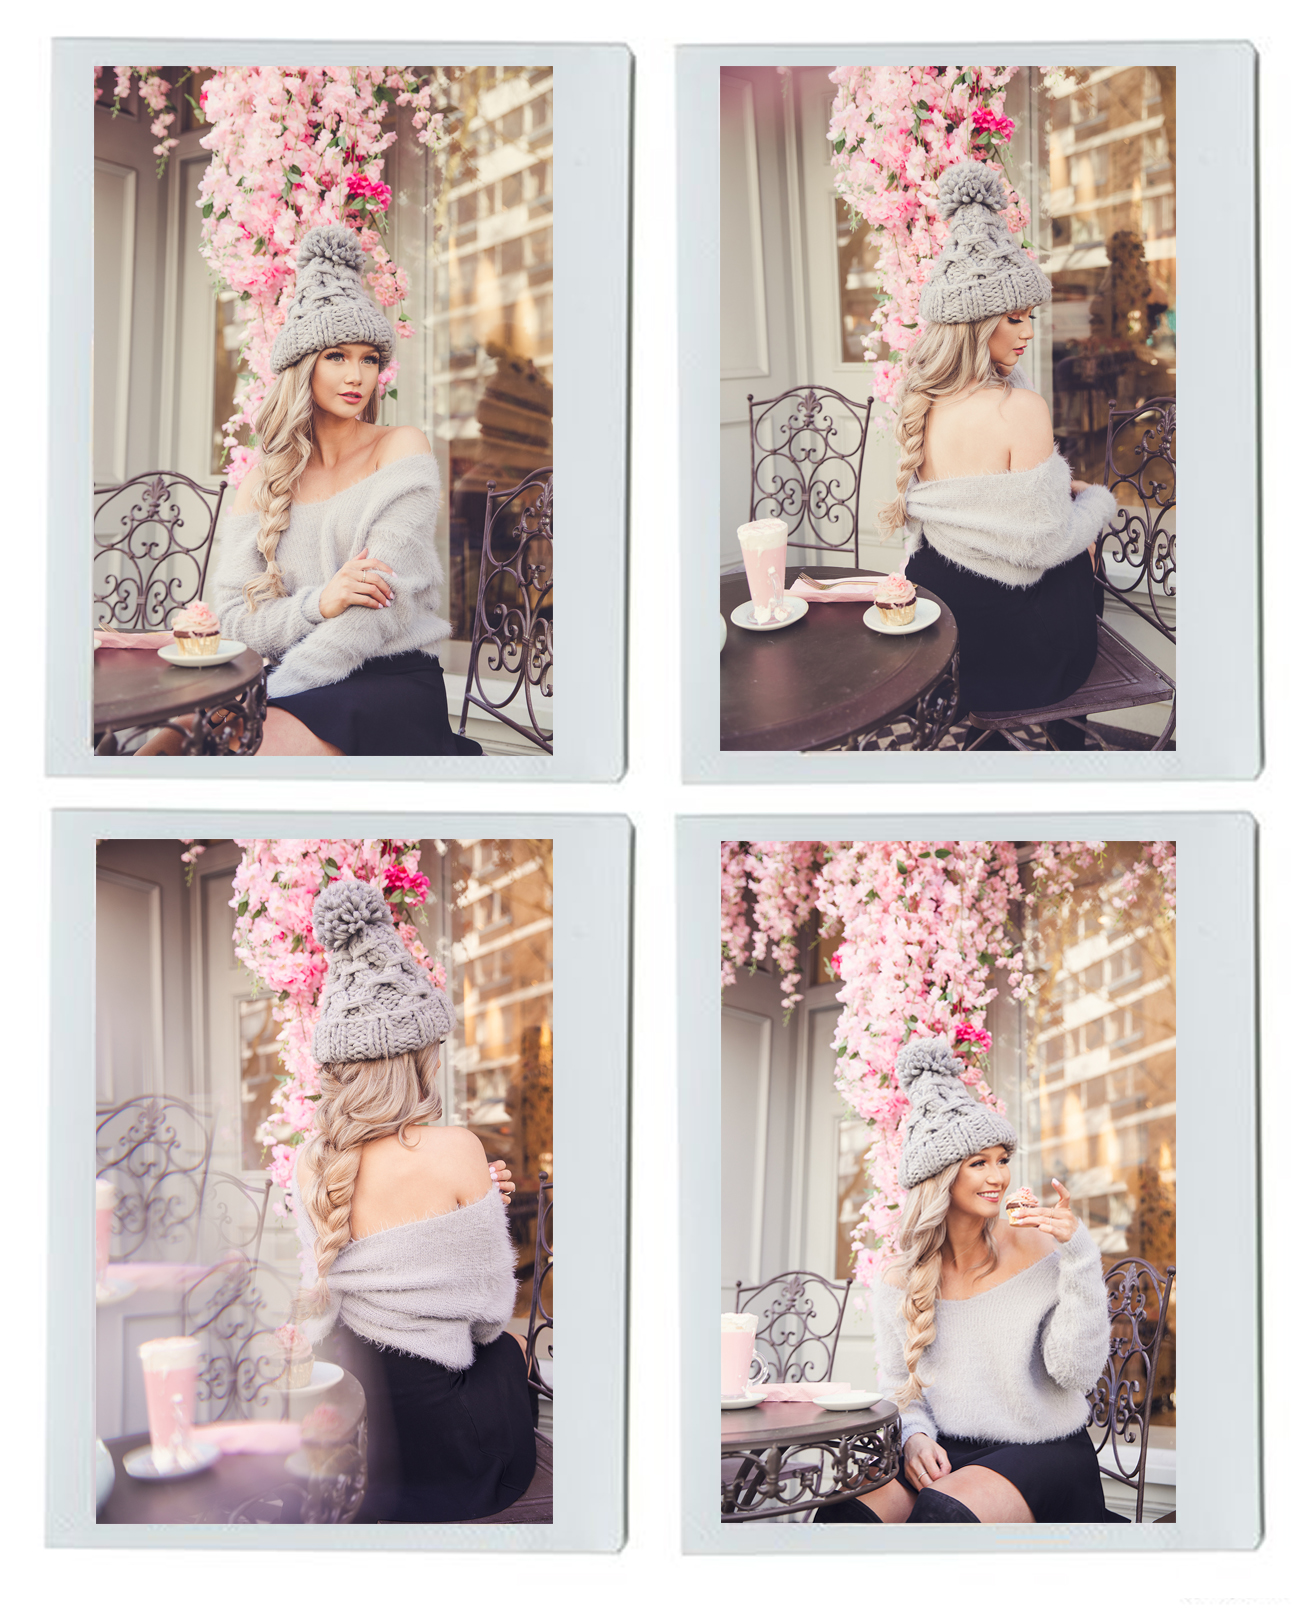 4 polaroids of fashion blogger Stephanie Danielle by London fashion photographer Ailera Stone